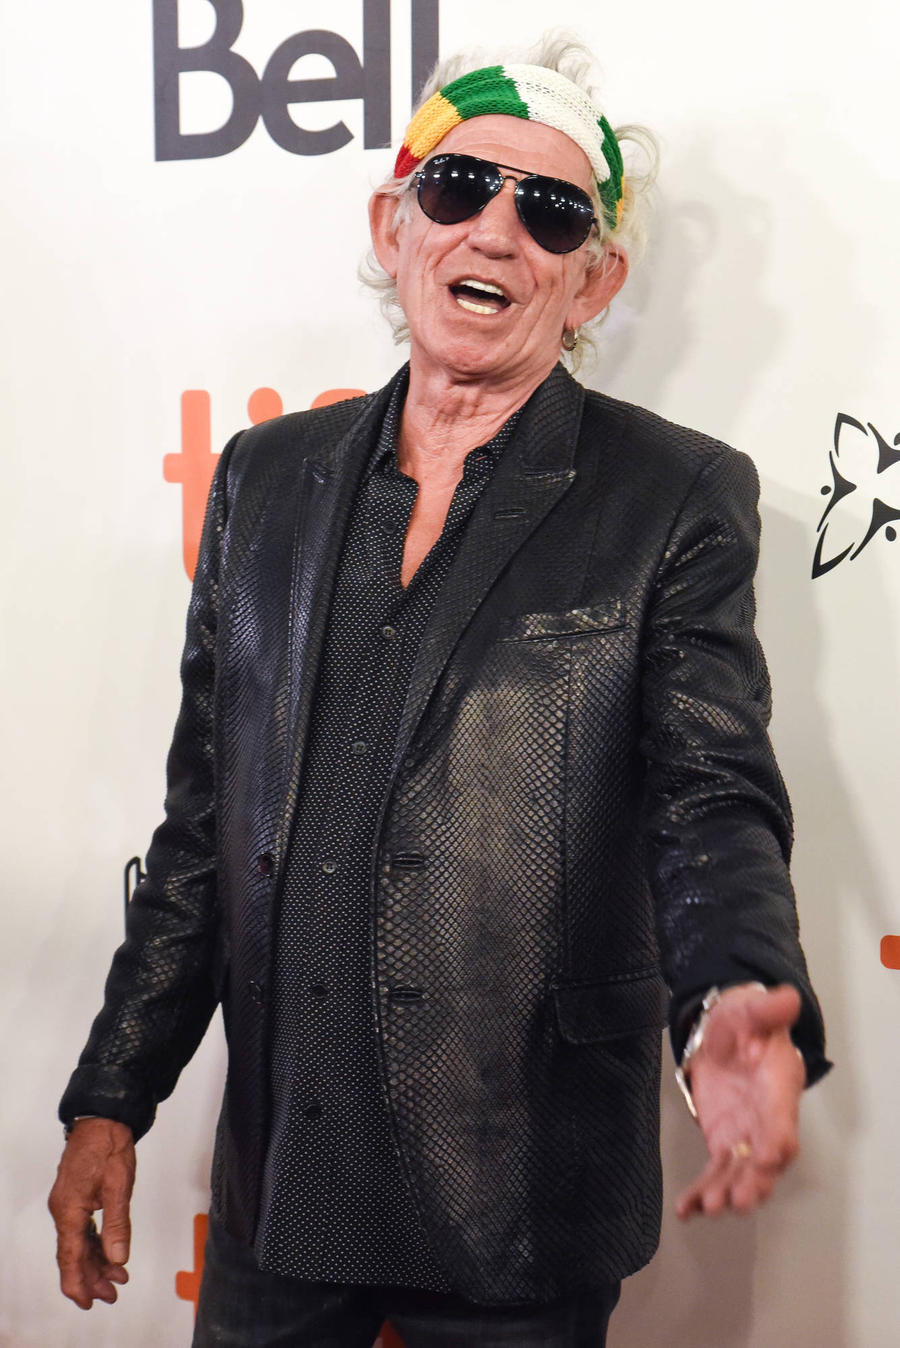 Keith Richards And Robert De Niro Star In Refugee Campaign Video